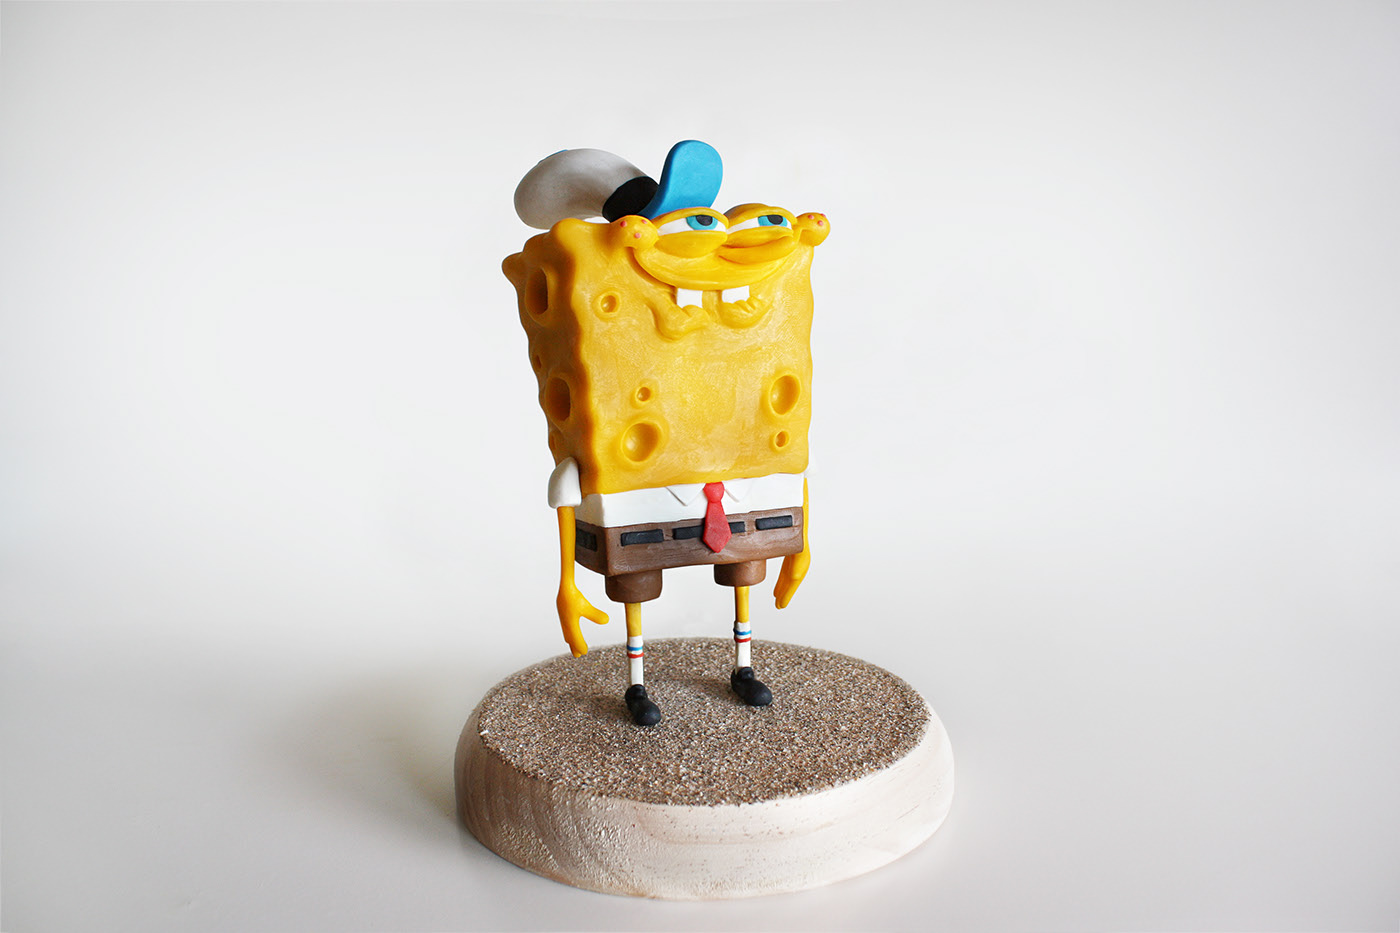 Crafts, Toy Design, Character Design